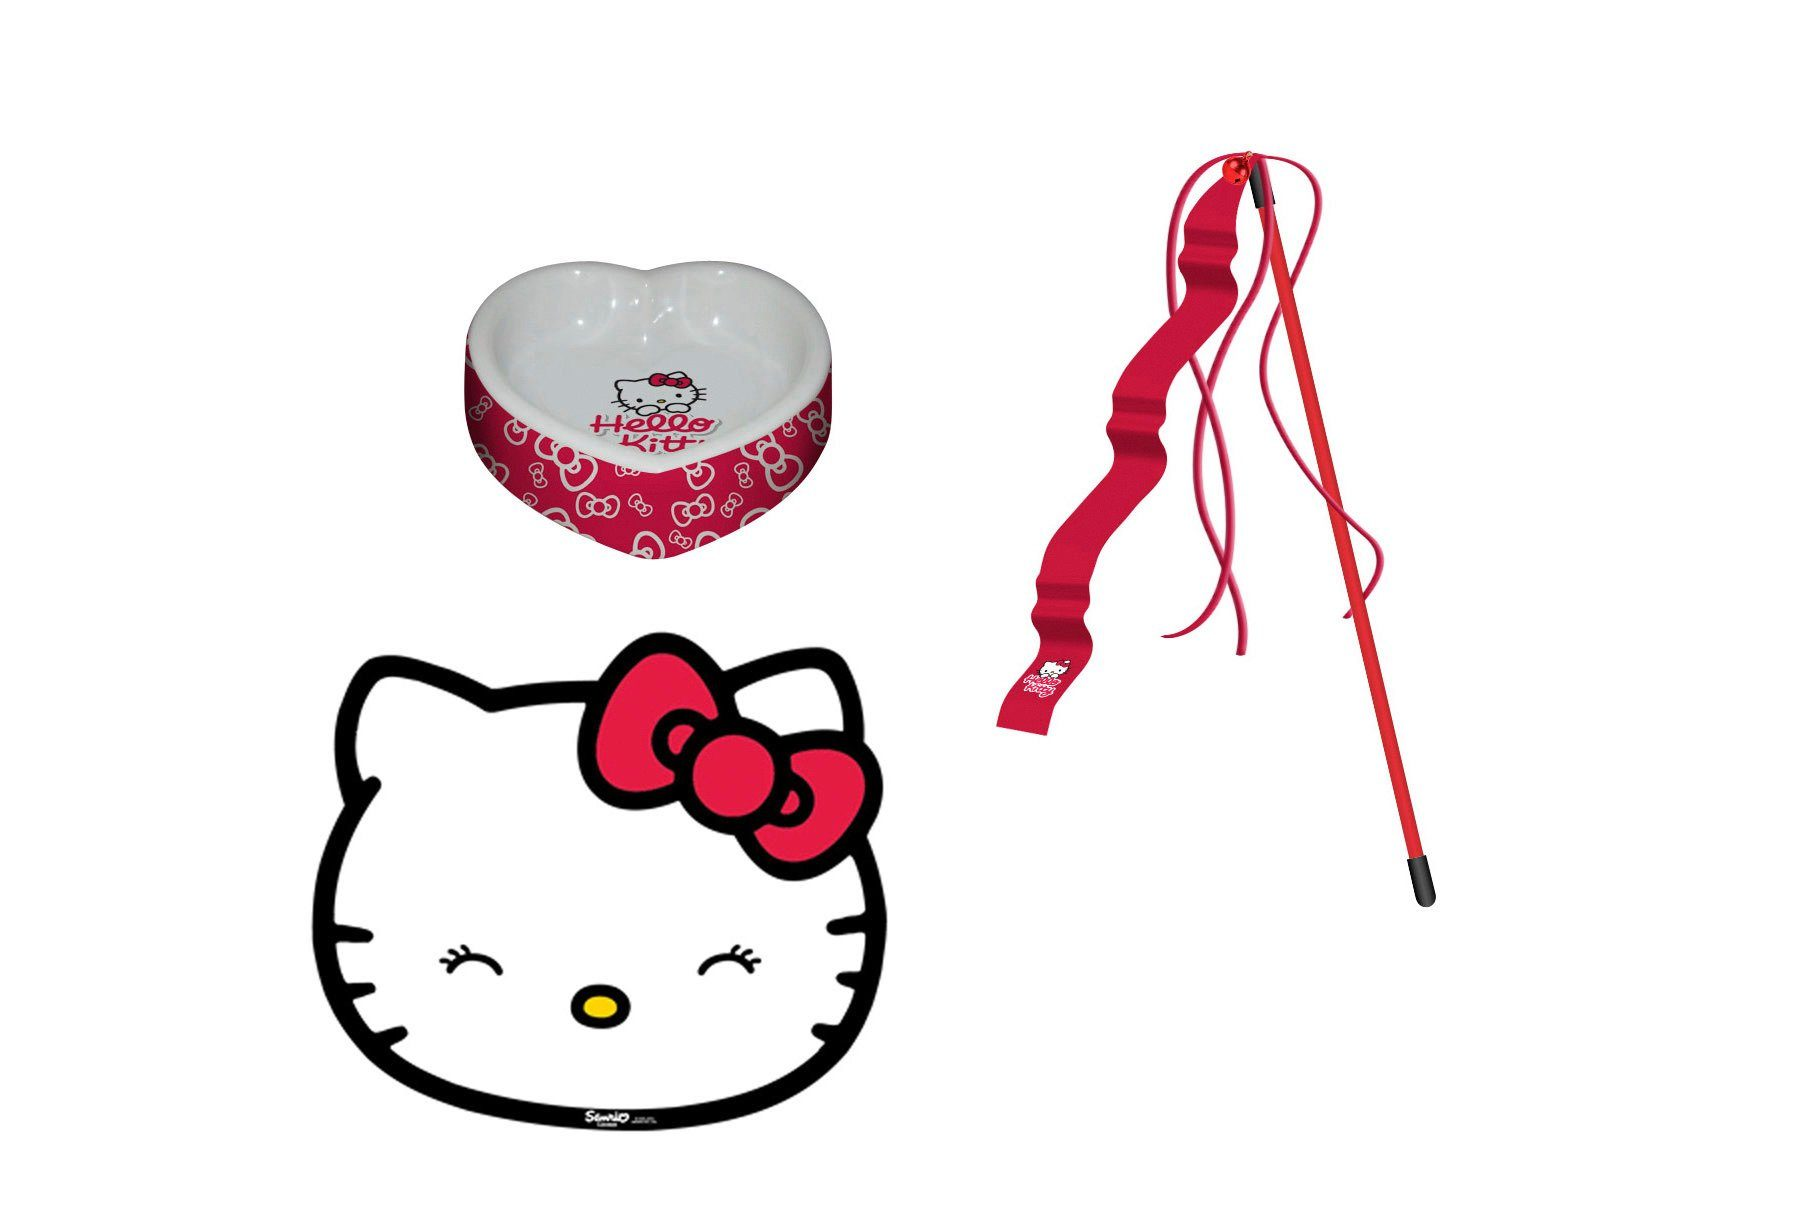 Katzen-Napf-Set »Hello Kitty Napfset«